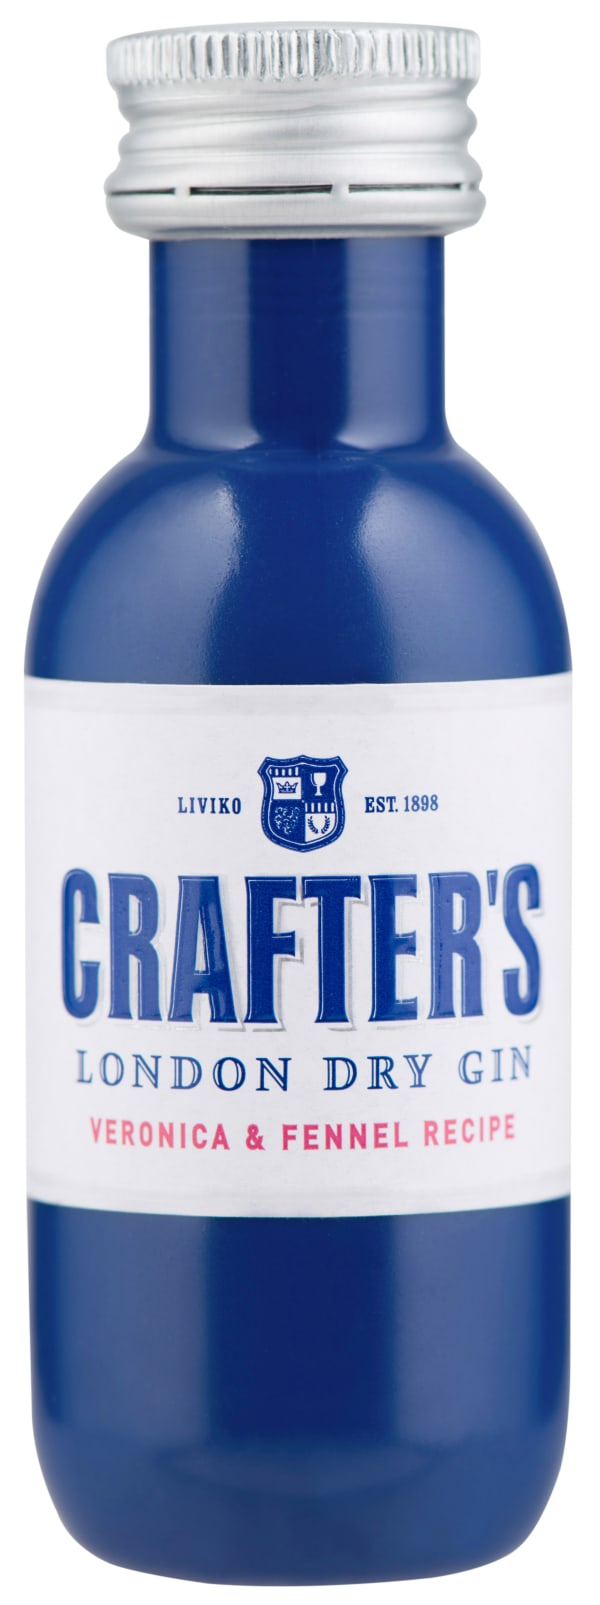 Crafter's London Dry Gin plastic bottle